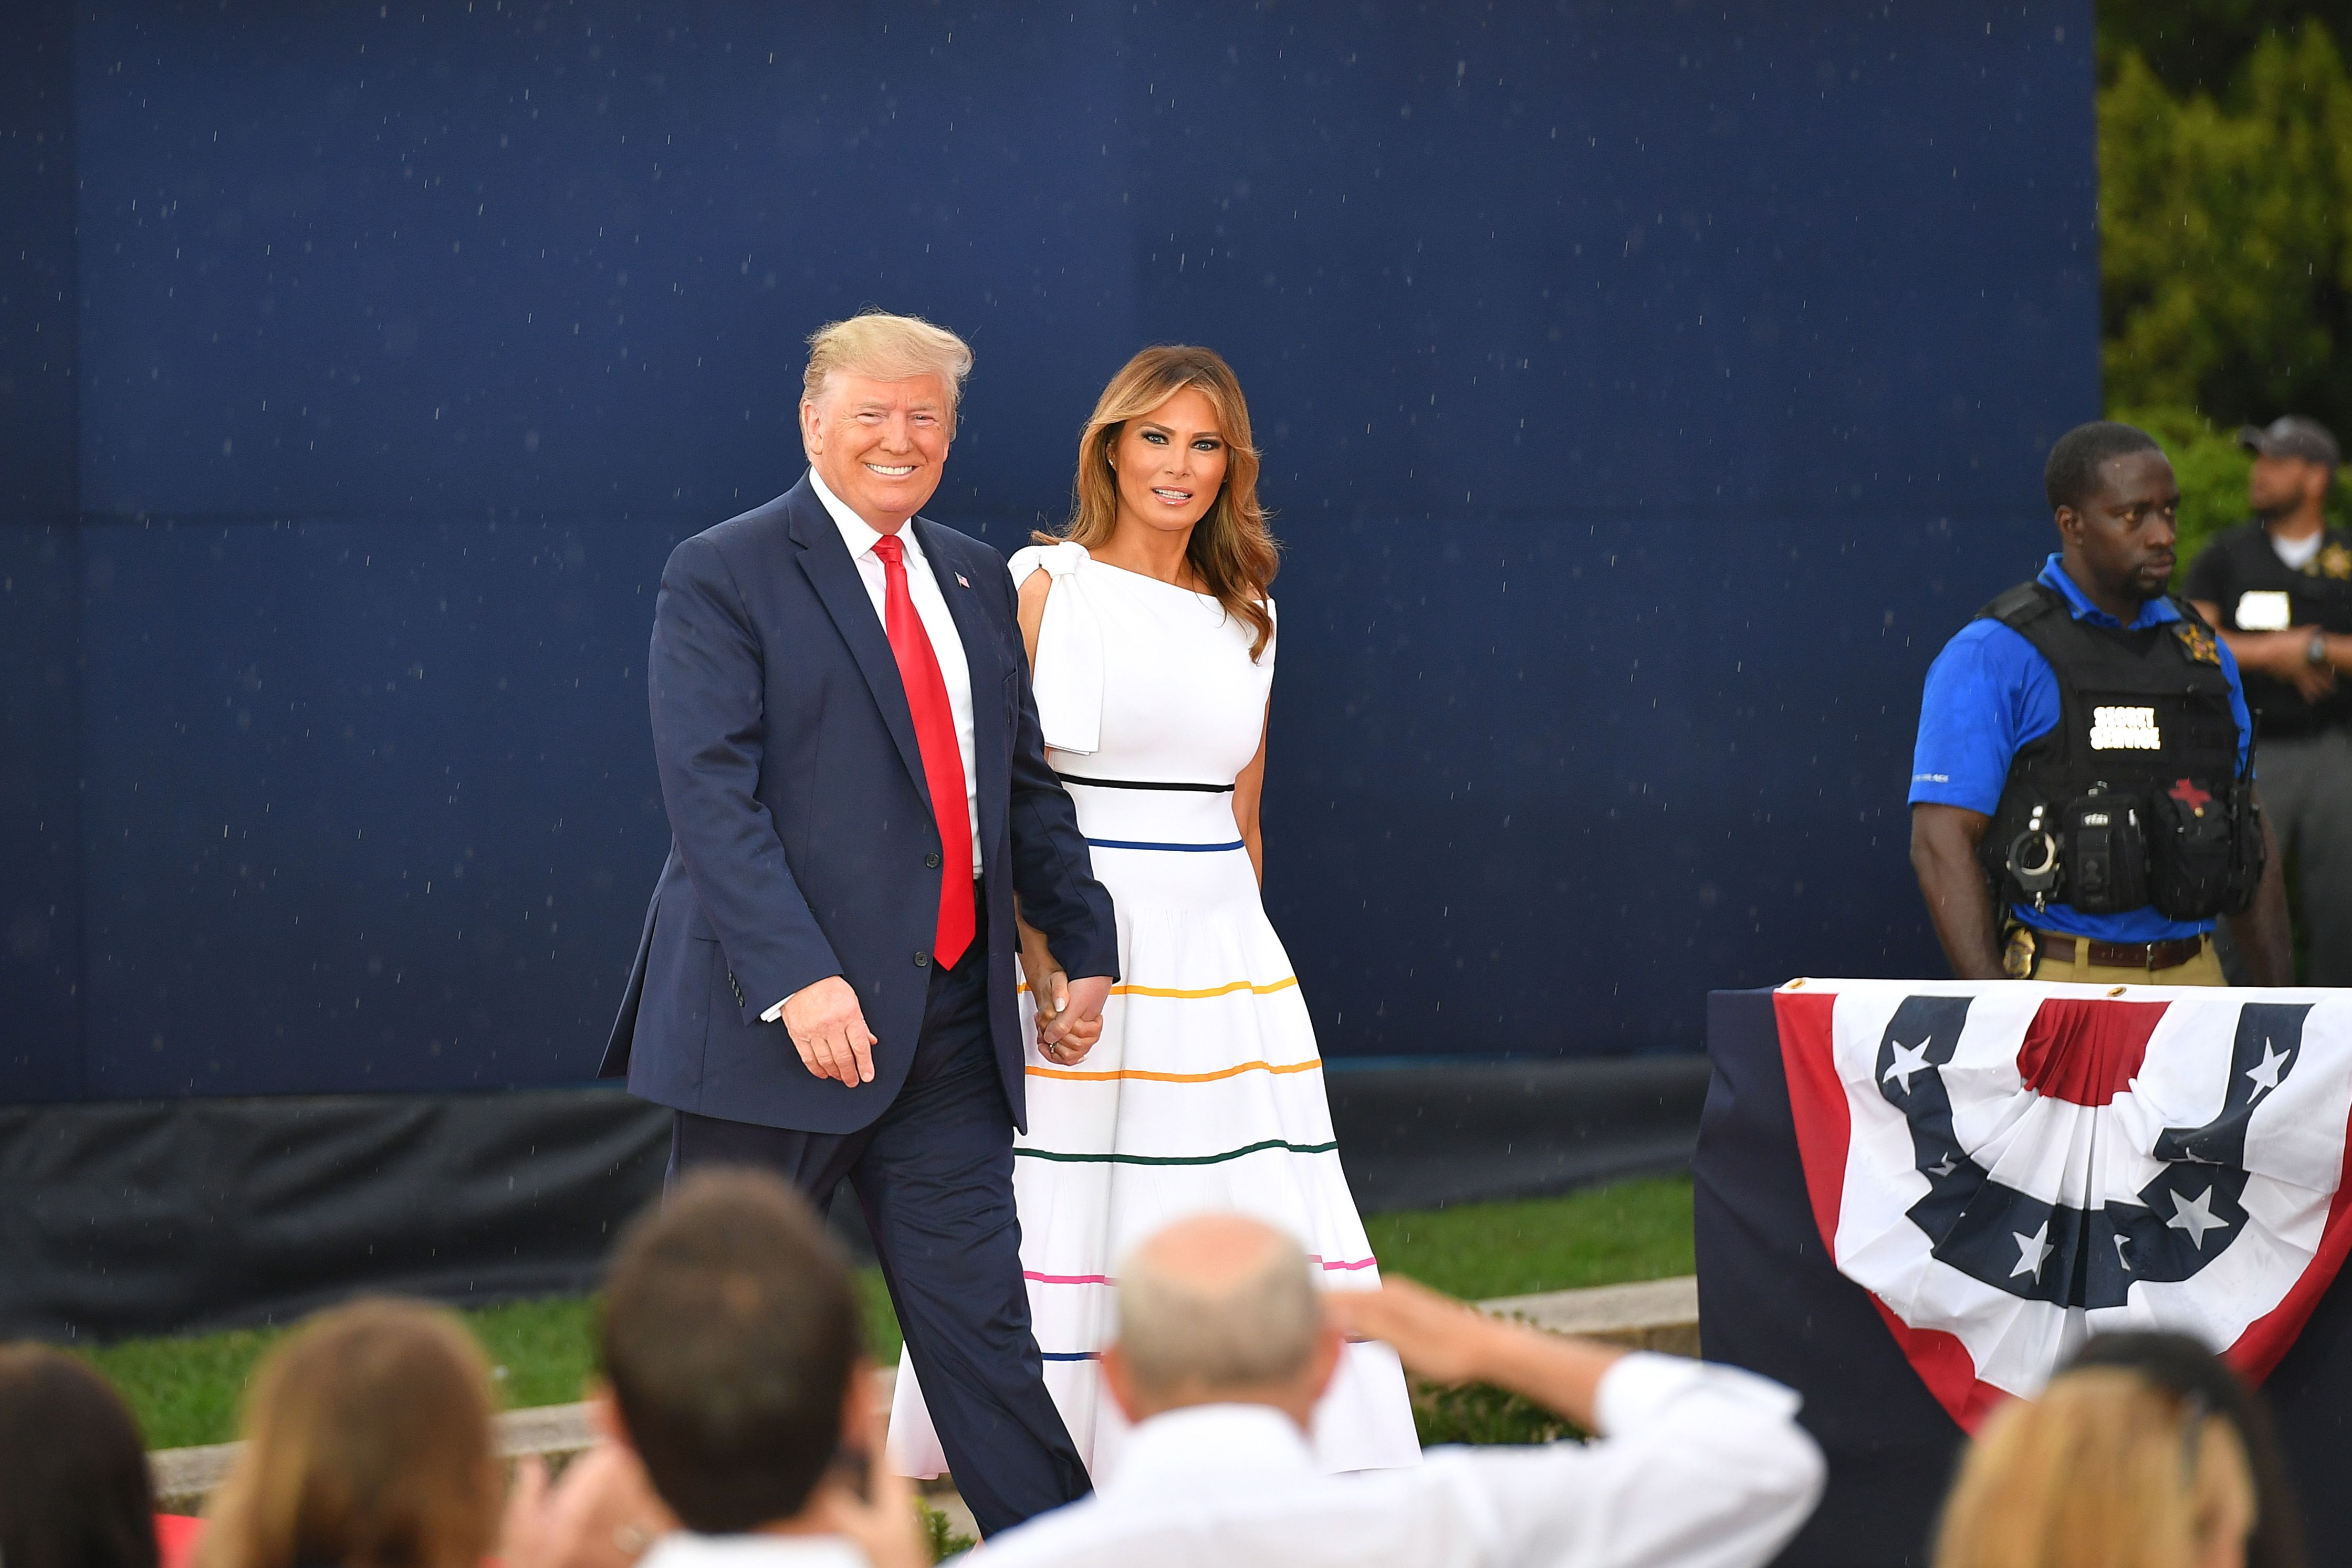 """US President Donald Trump (L) and US First Lady Melania Trump arrive for the """"Salute to America"""" Fourth of July event at the Lincoln Memorial in Washington, DC, July 4, 2019. (Photo by MANDEL NGAN / AFP)        (Photo credit should read MANDEL NGAN/AFP/Getty Images)"""